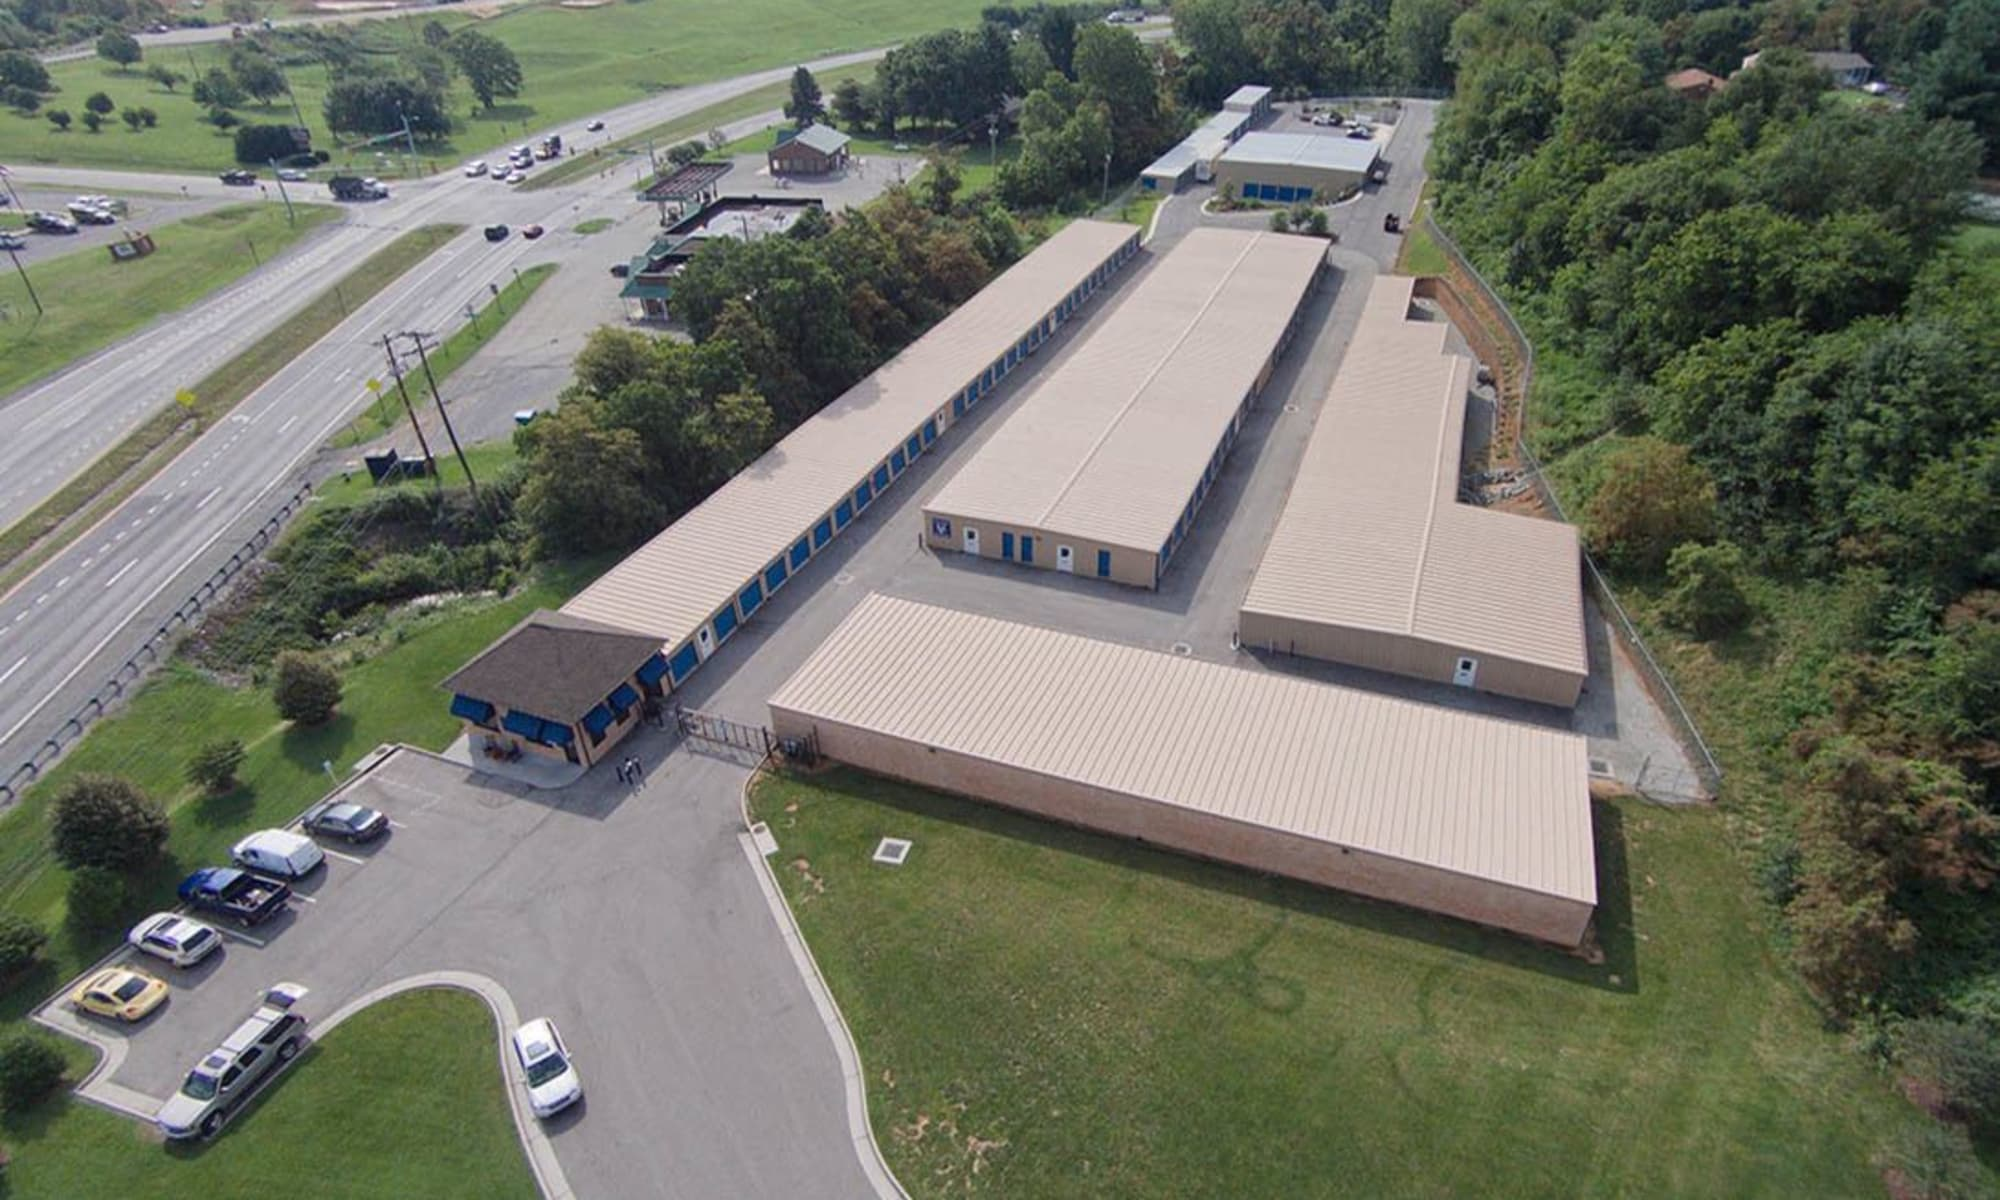 Aerial view of Self storage facility